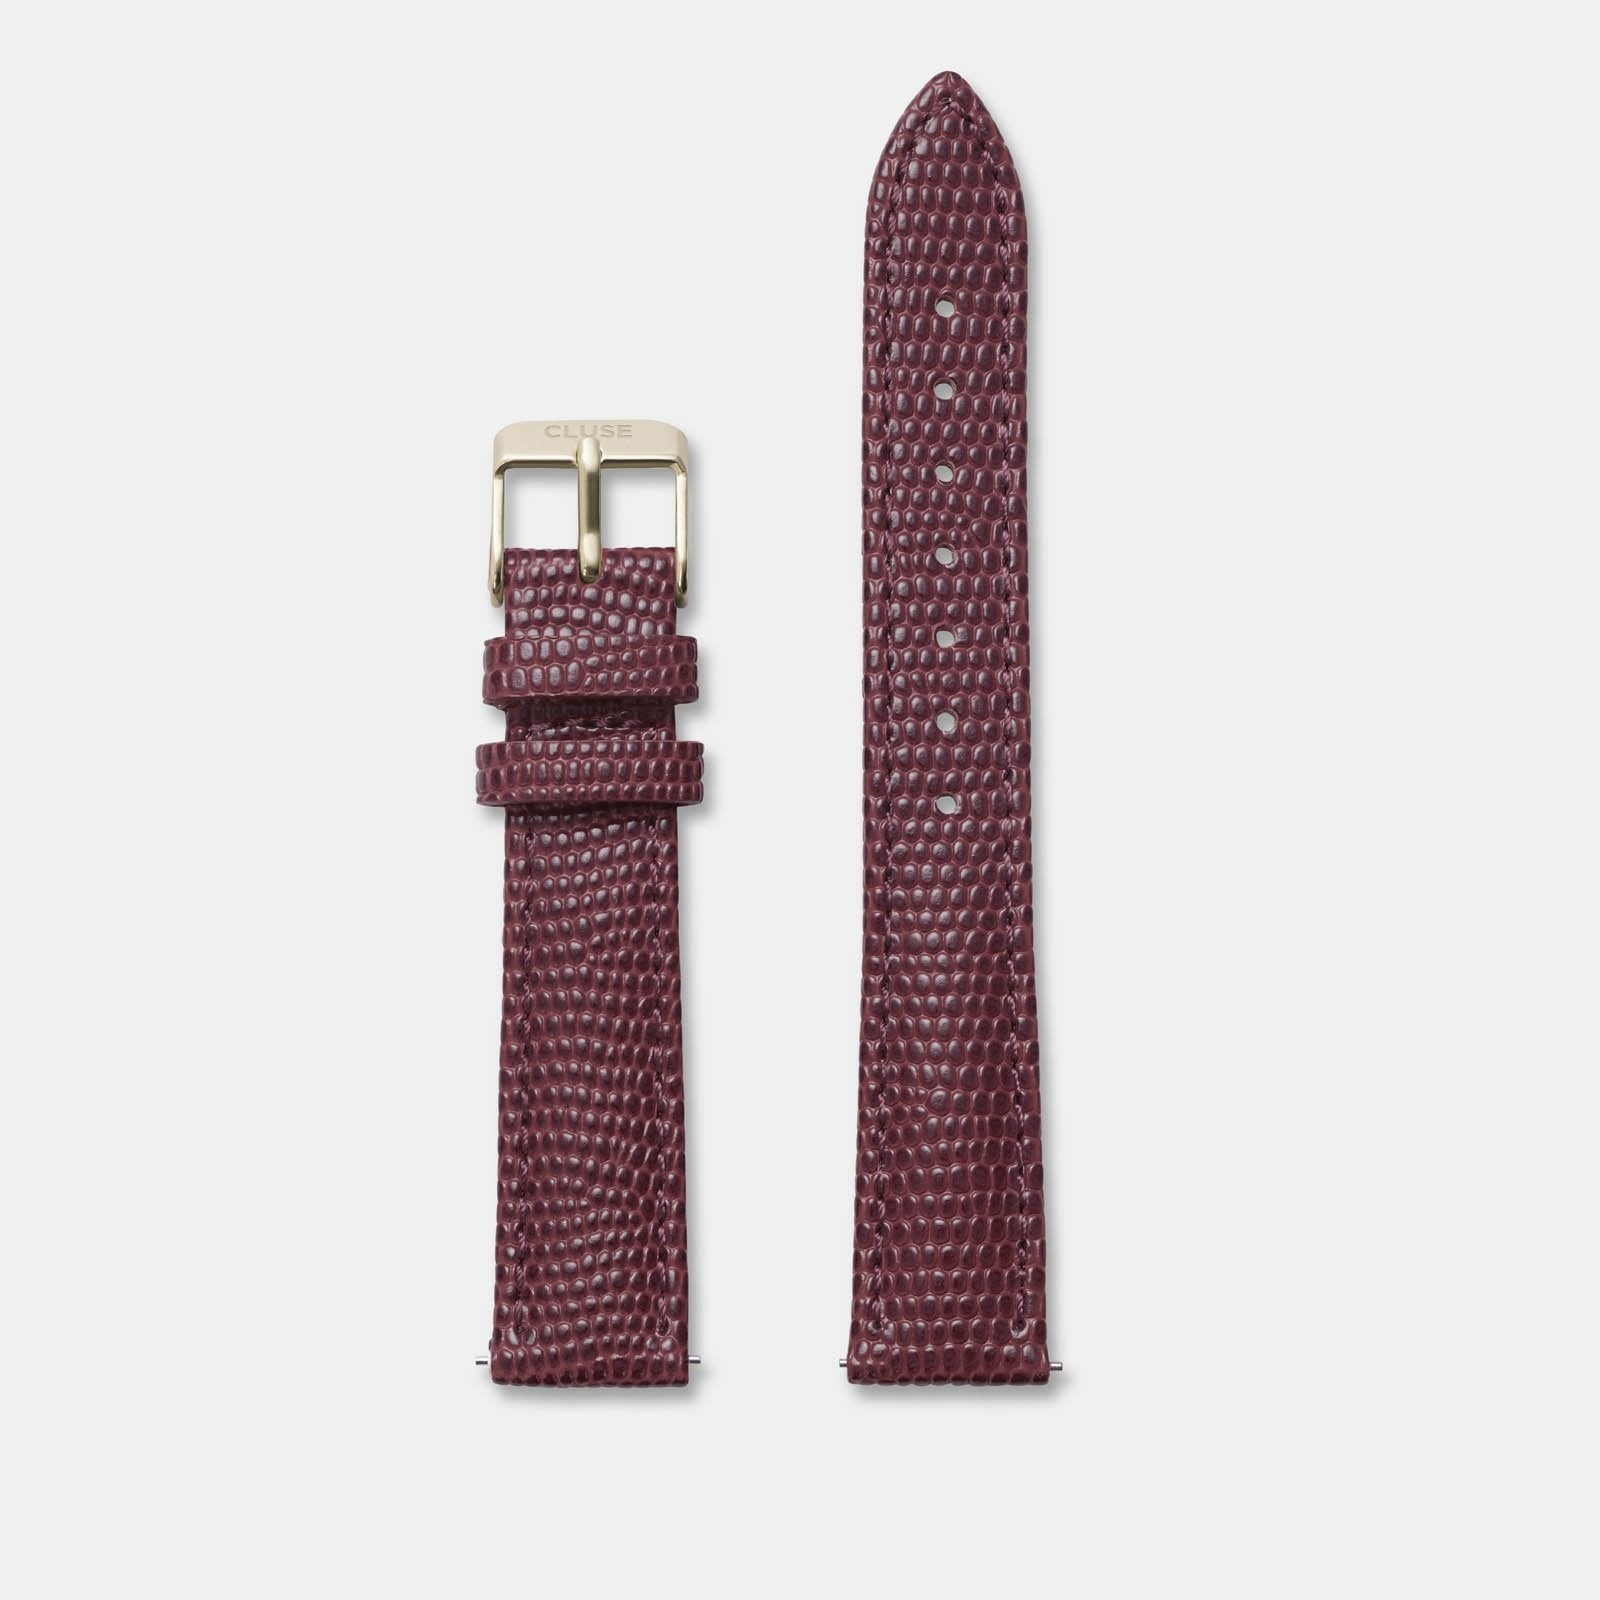 CLUSE 16 mm Strap Burgundy Lizard/Gold CLS379 - bandje